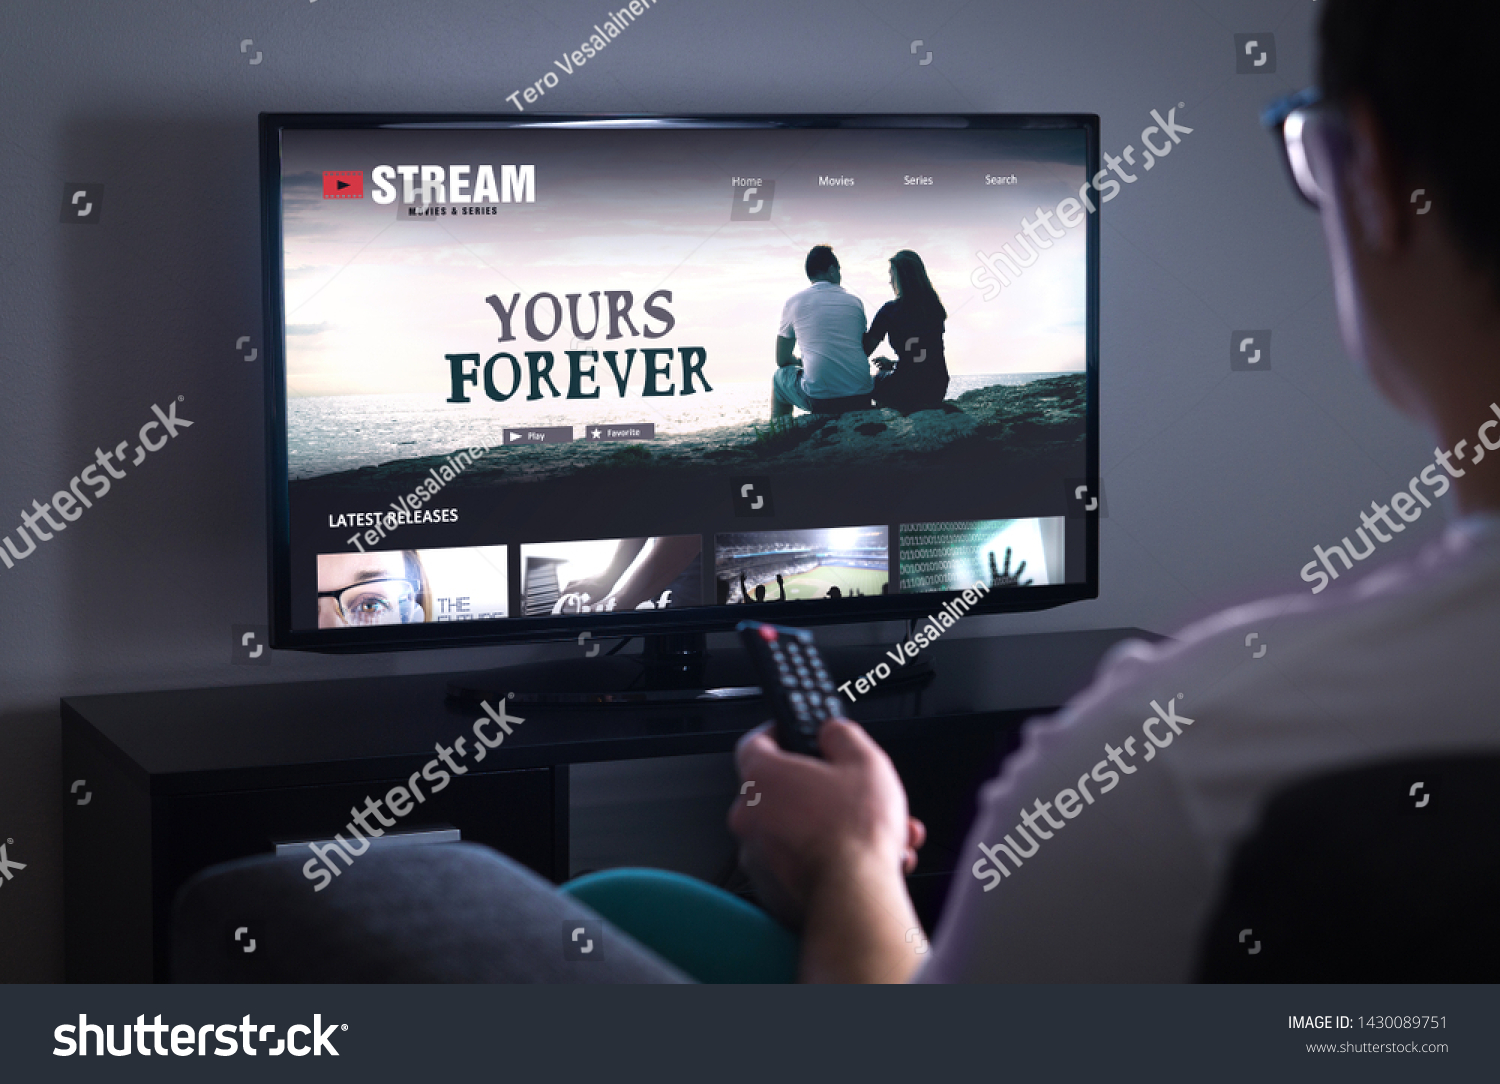 Online movie stream service in smart tv. Streaming series with on demand video (VOD) service in television. Man choosing film to watch with remote. Person sitting on couch at home late at night.